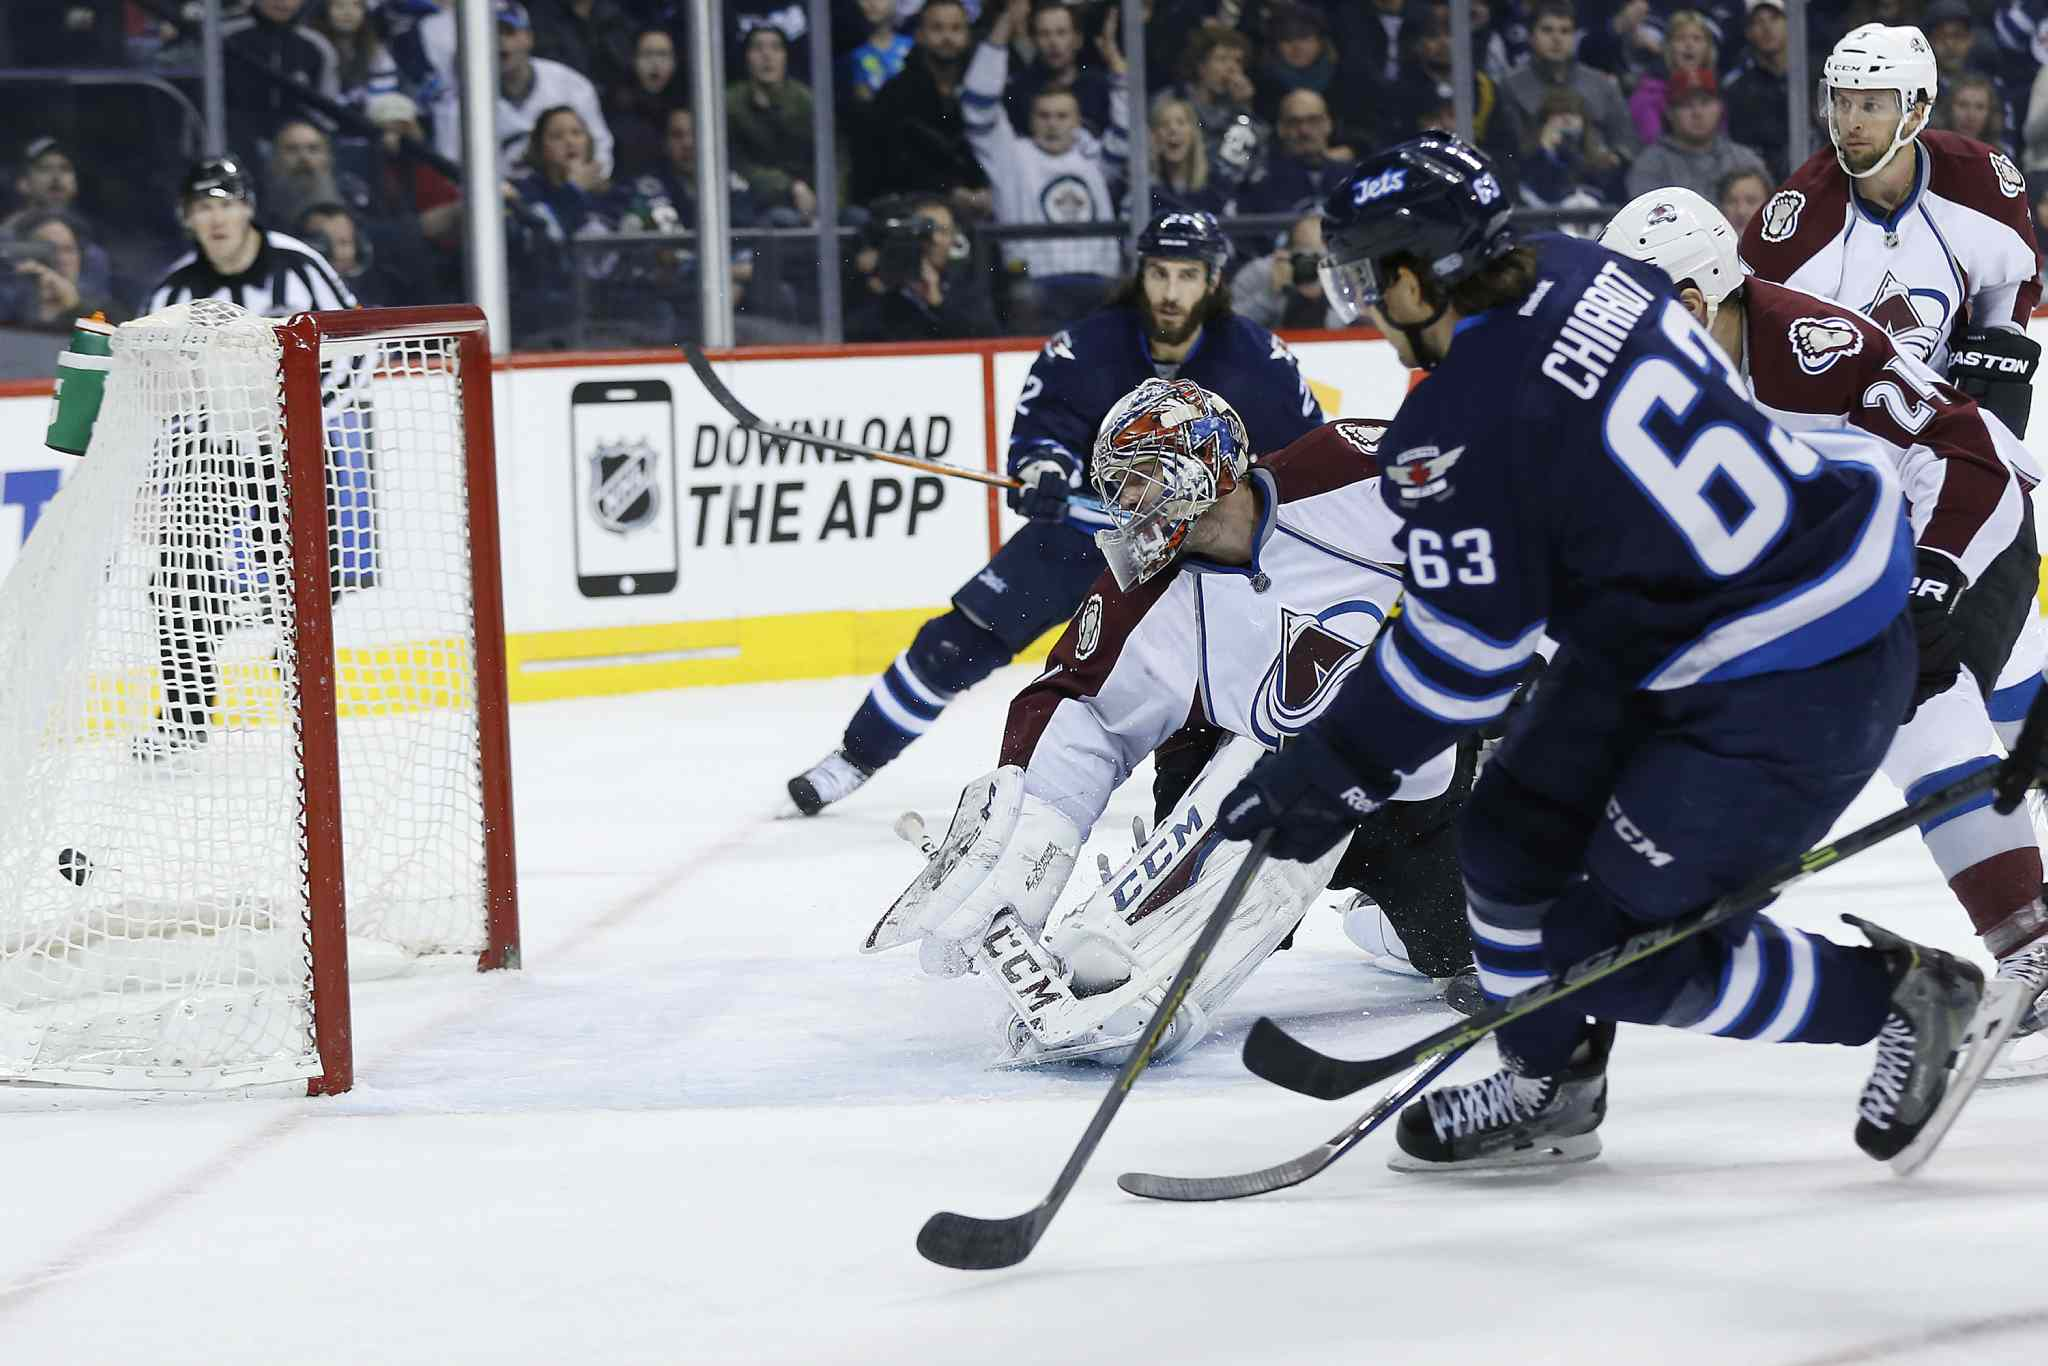 Winnipeg Jets defenceman Ben Chiarot (63) drives the puck past Colorado Avalanche goaltender Semyon Varlamov during second-period action Sunday night.